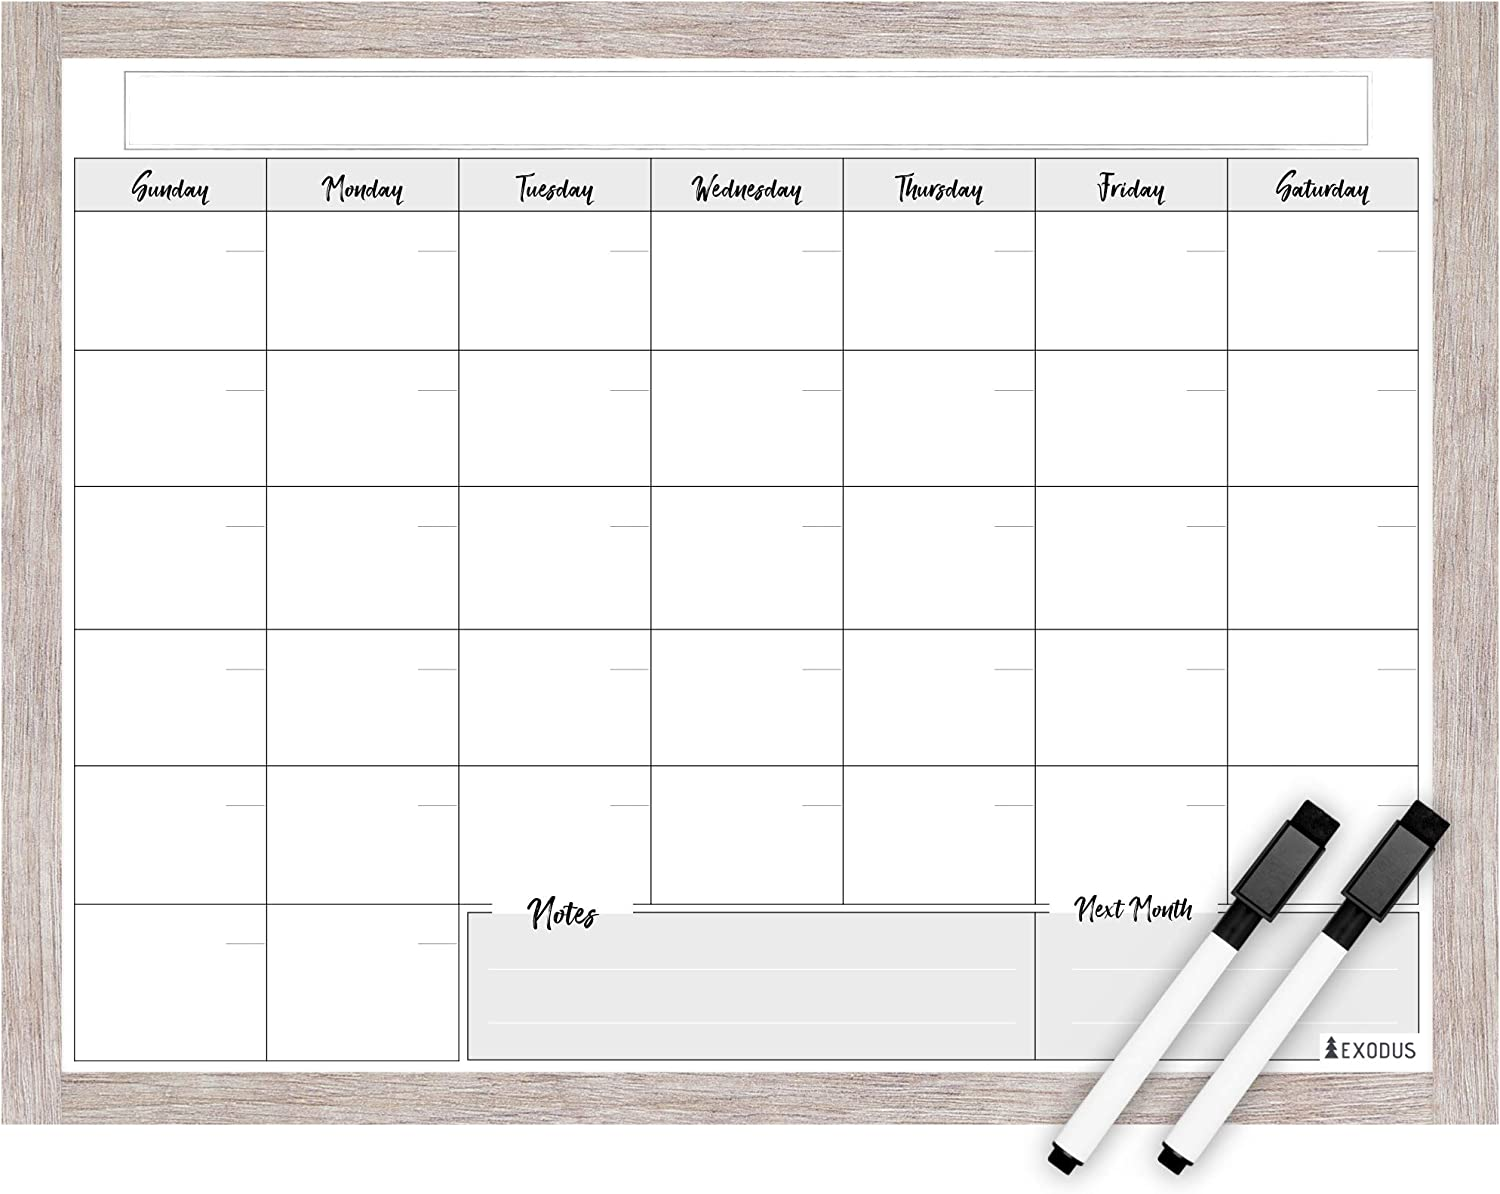 "EXODUS Dry-Erase Magnetic Fridge Calendar Complete Set with 2 Fine-Tip Black Markers 12""x16"" Premium Quality Dry Erase Film, Monthly Planning and Family Schedule Organizer, Rustic Wood-Design Border"